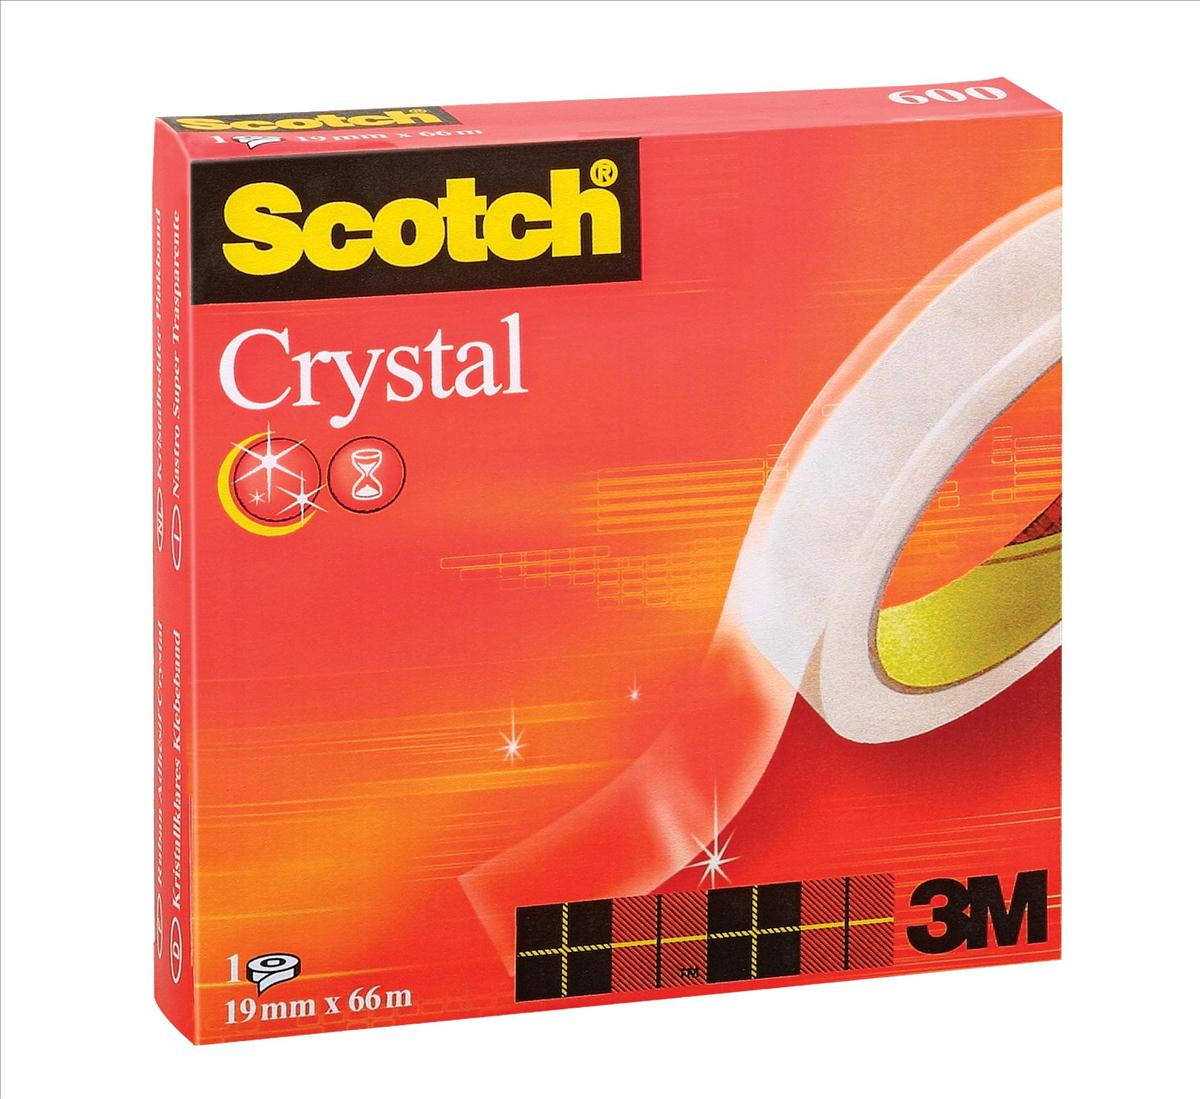 Image for Scotch Crystal Tape 19mmx66m Ref 6001966